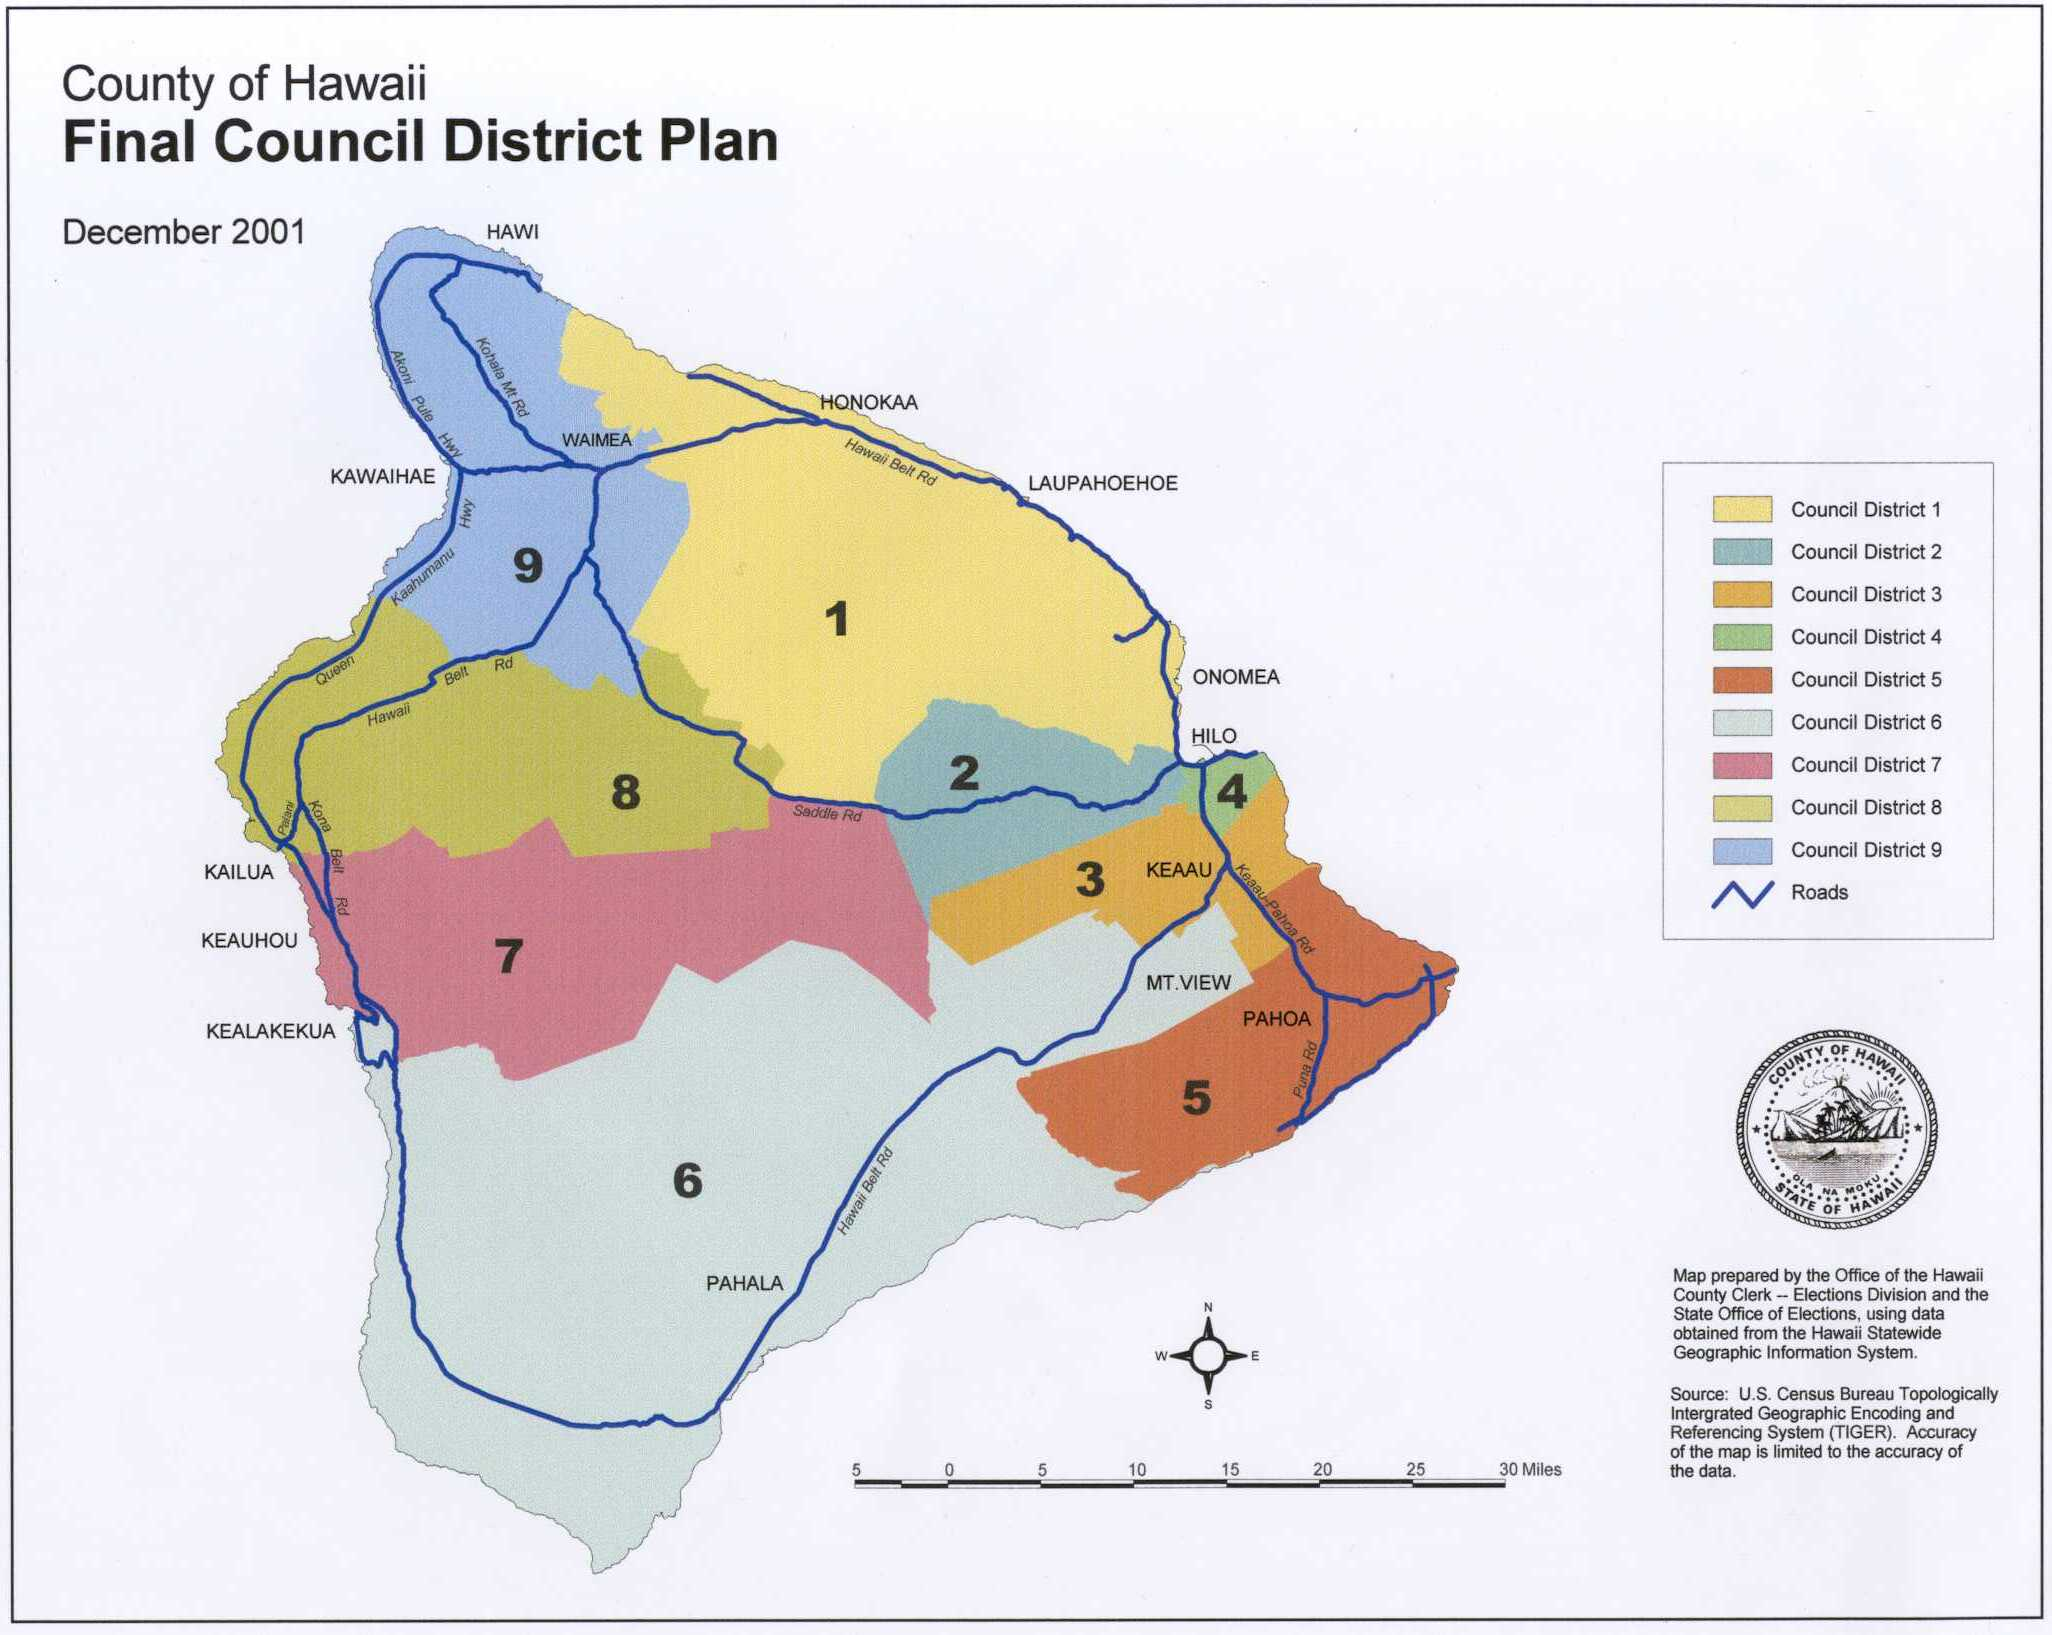 VIDEO: Hawaii County redistricting controversy begins